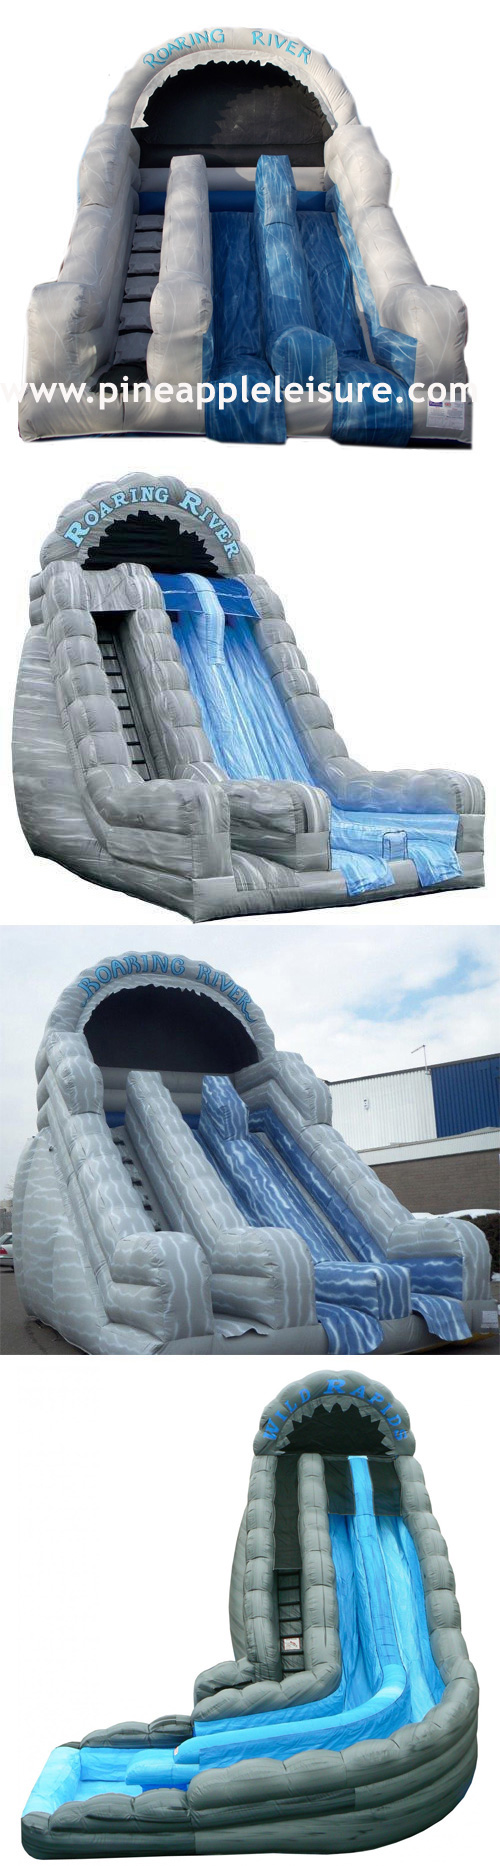 Bouncy Castle Sales - BS36 - Bouncy Inflatable for sale